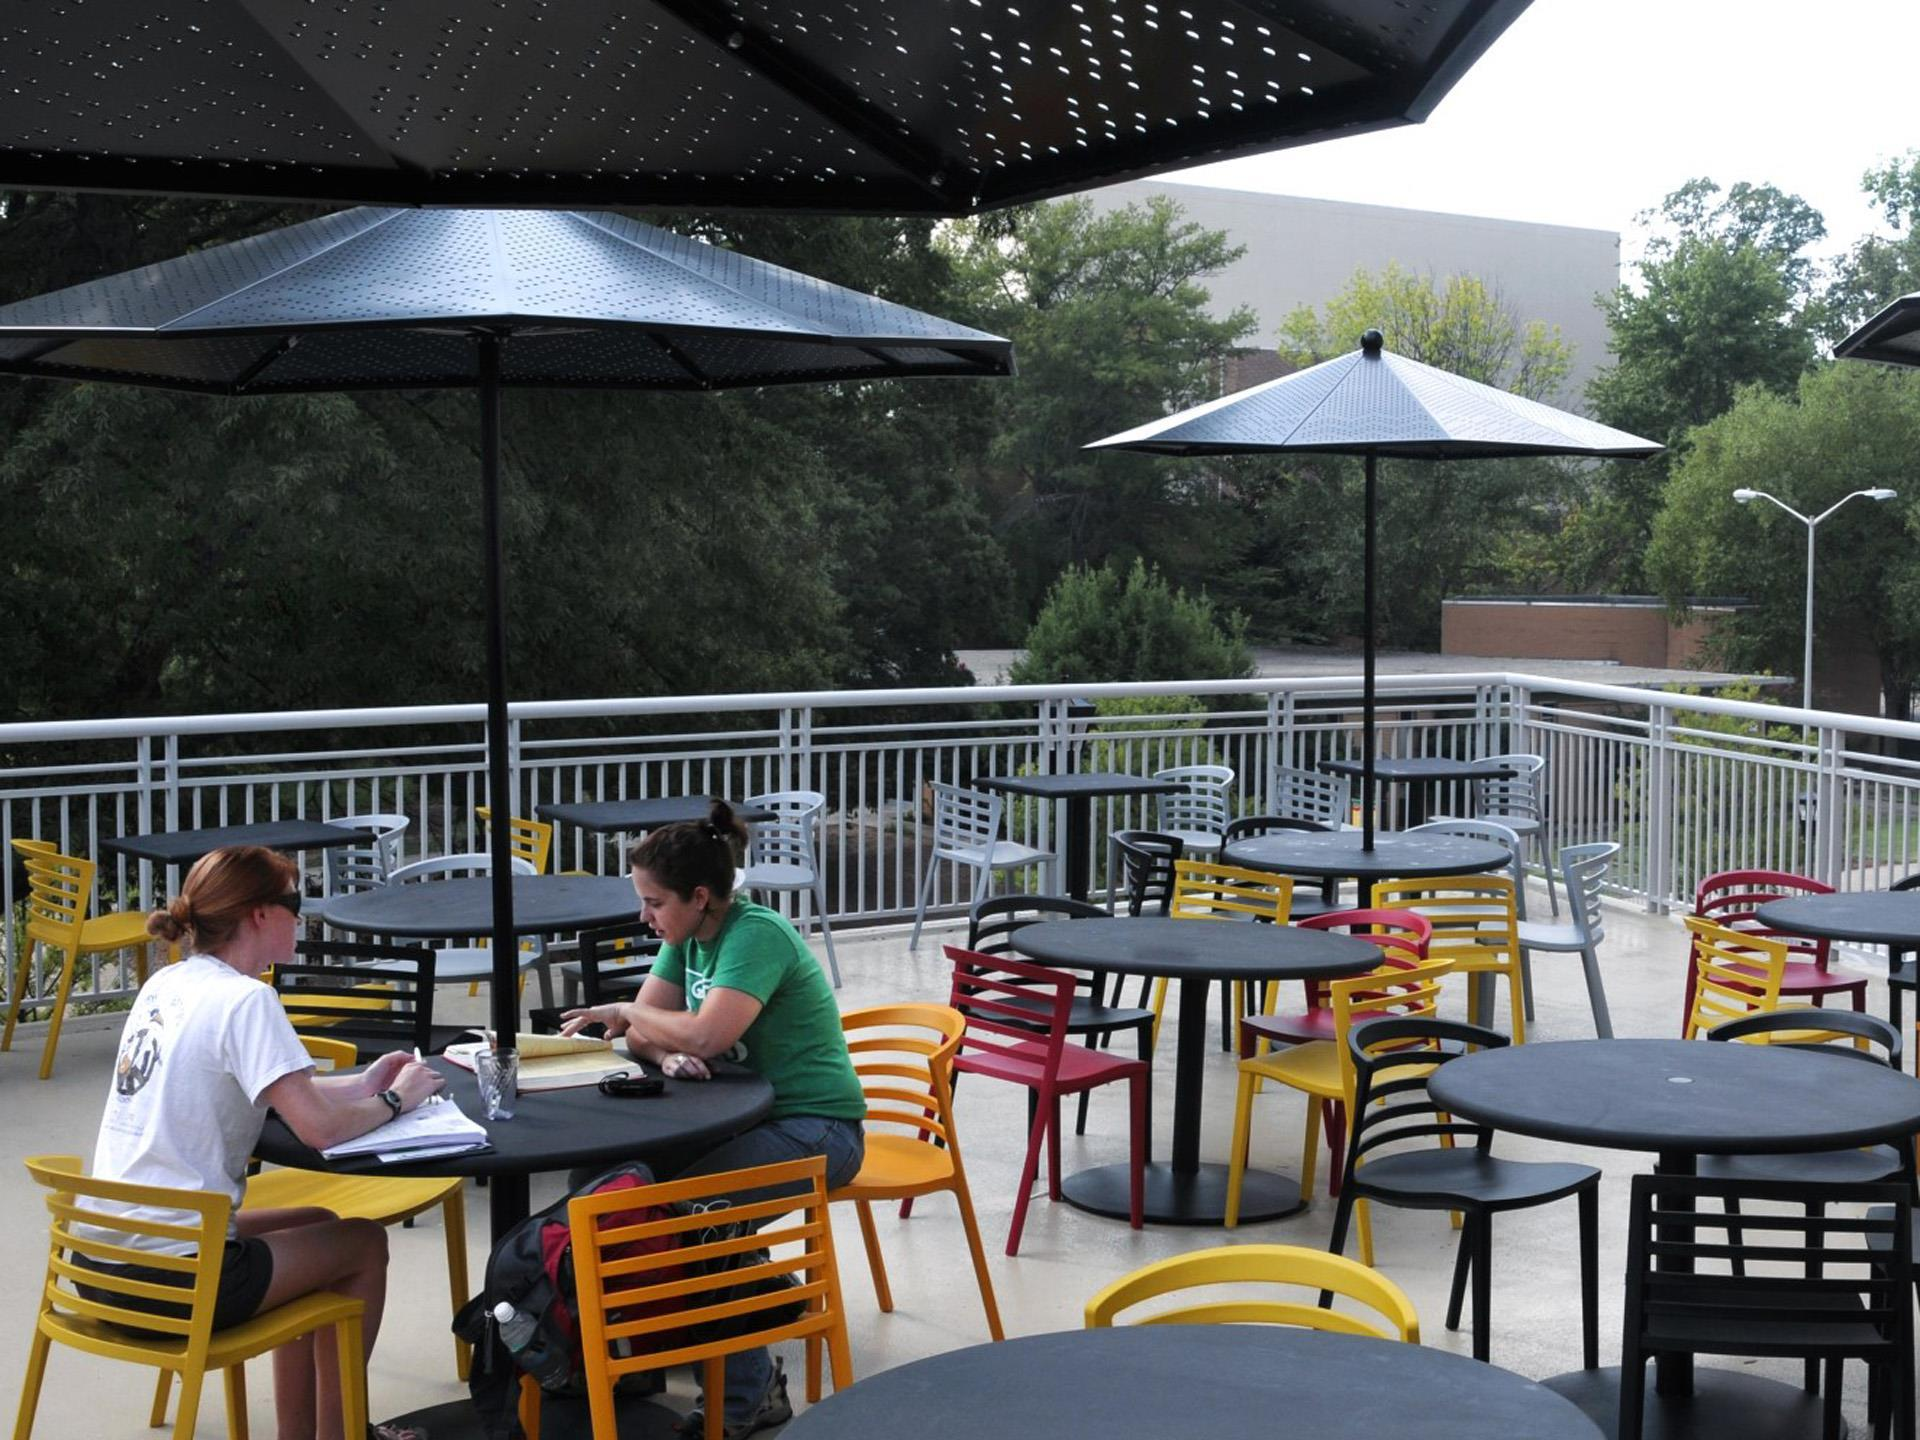 Outside eating area with tables and chairs and umbrellas on outside deck.